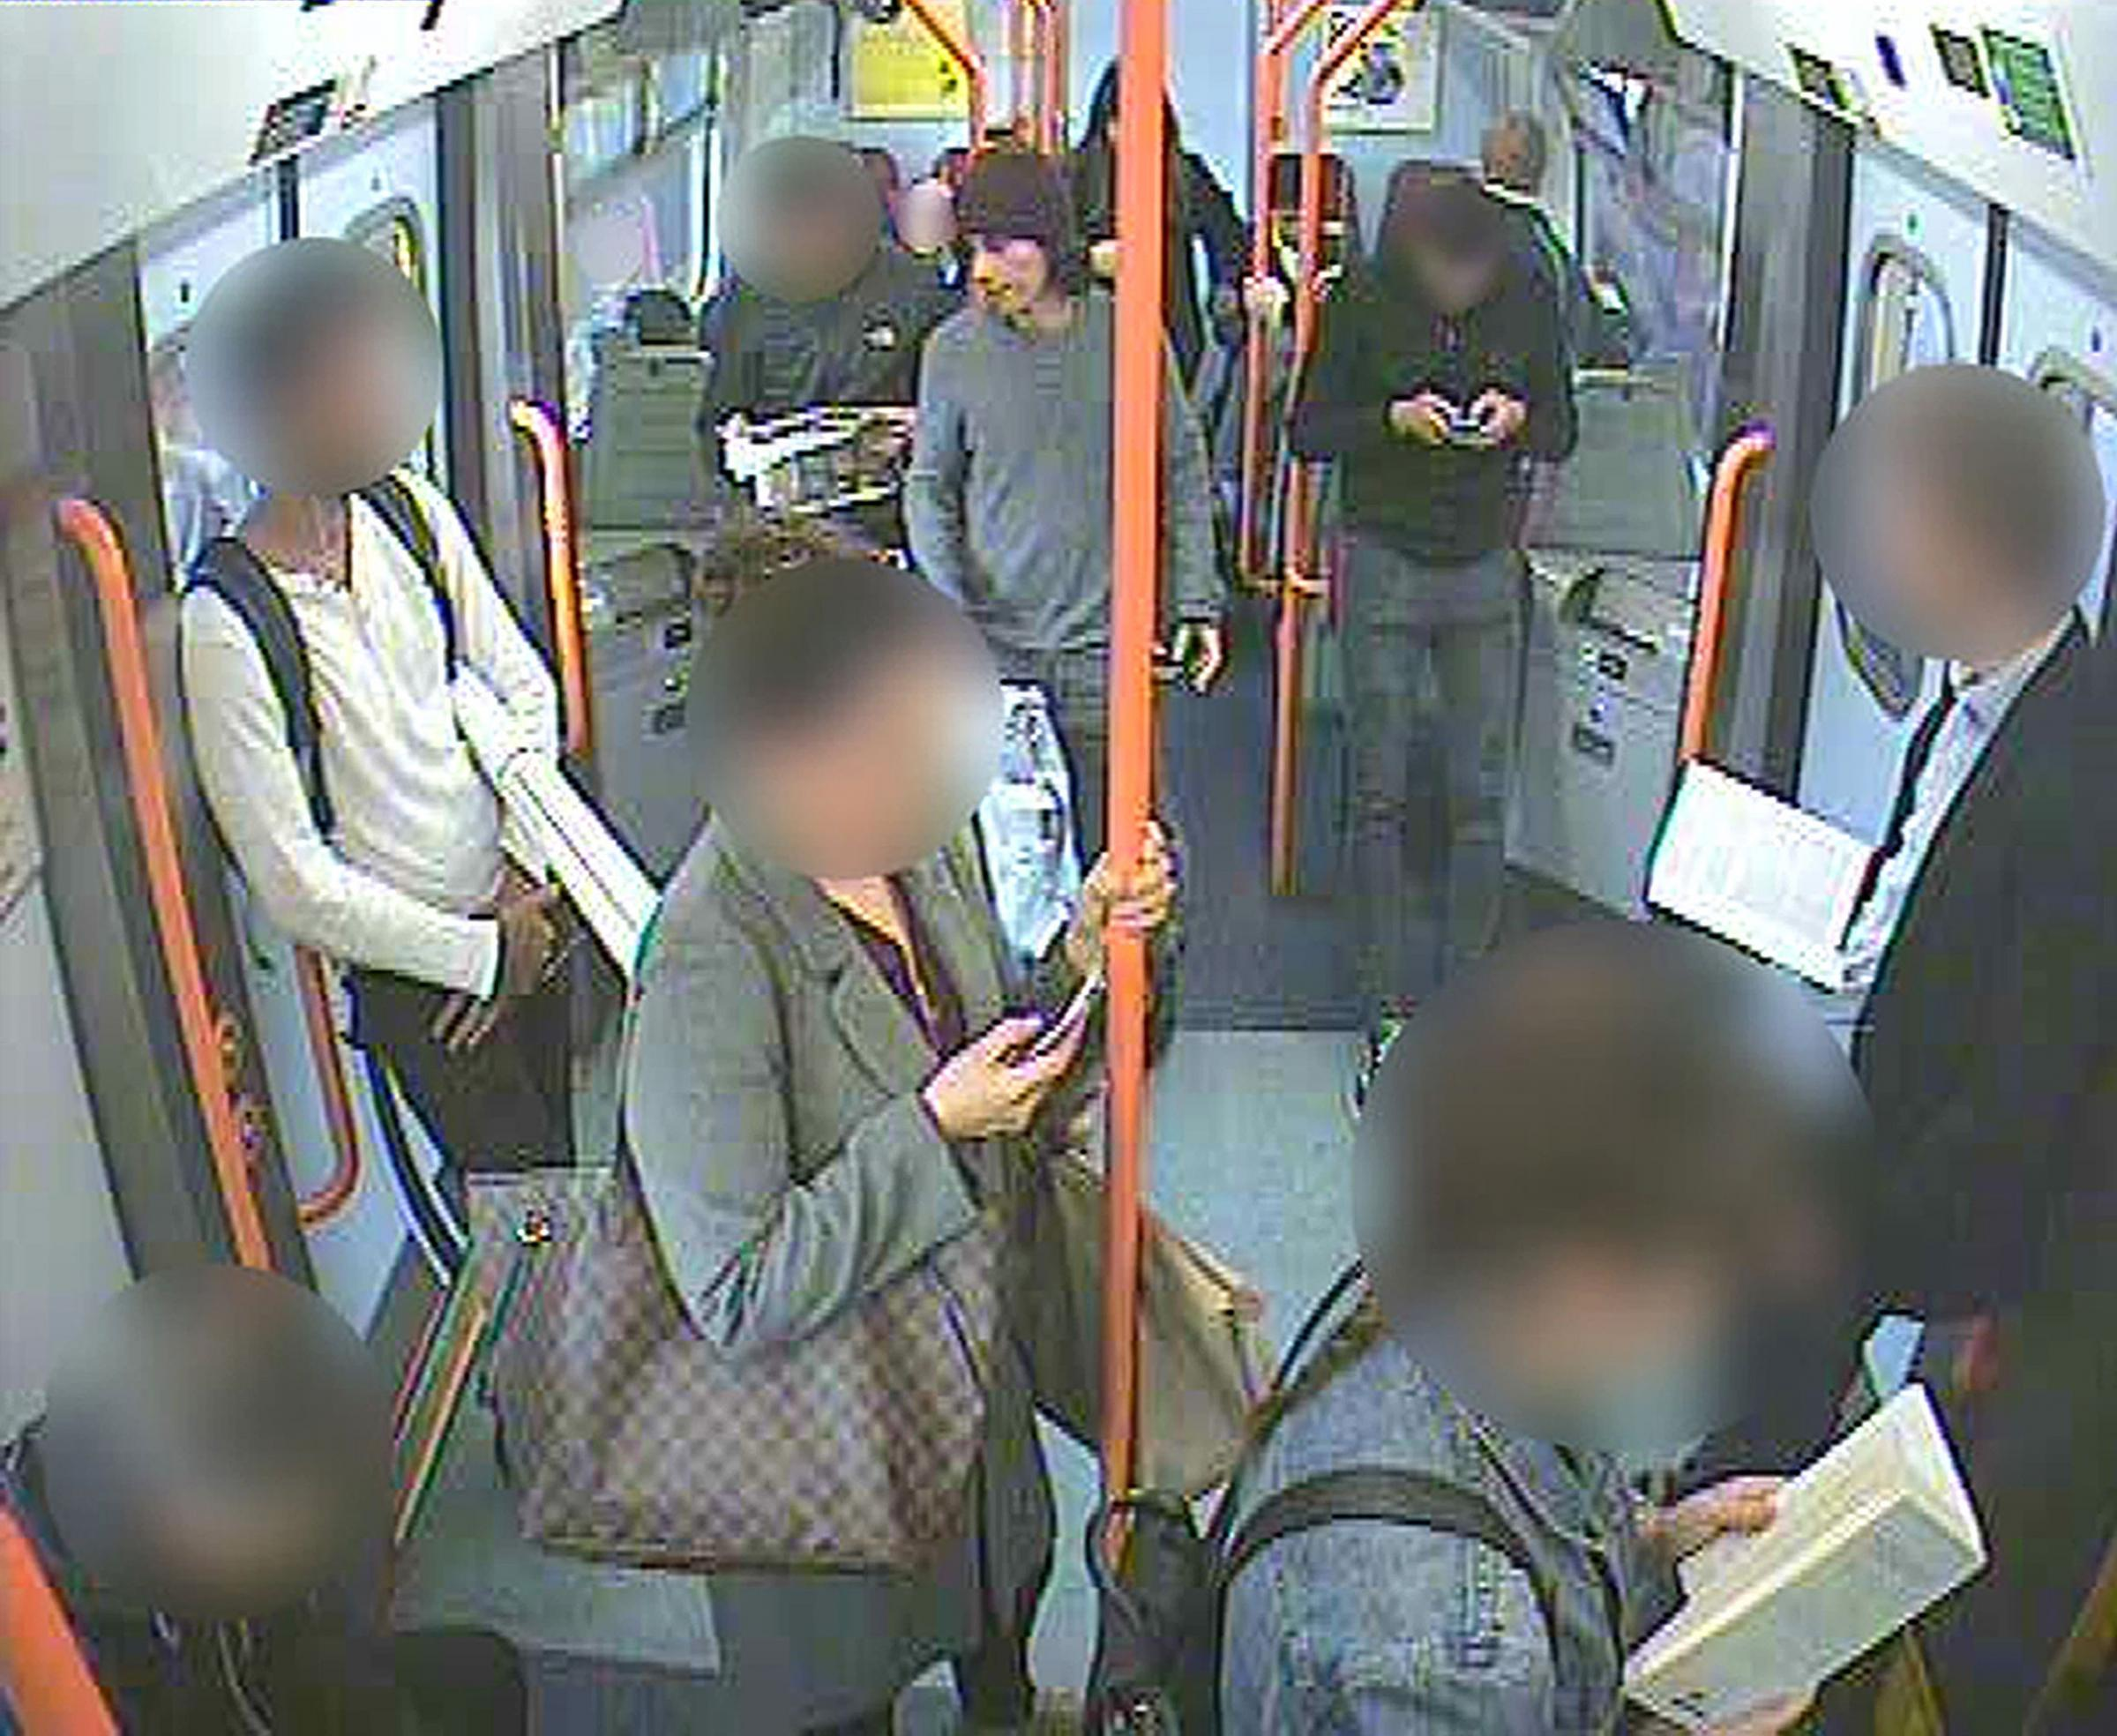 Parsons Green Tube bomber Ahmed Hassan jailed for life